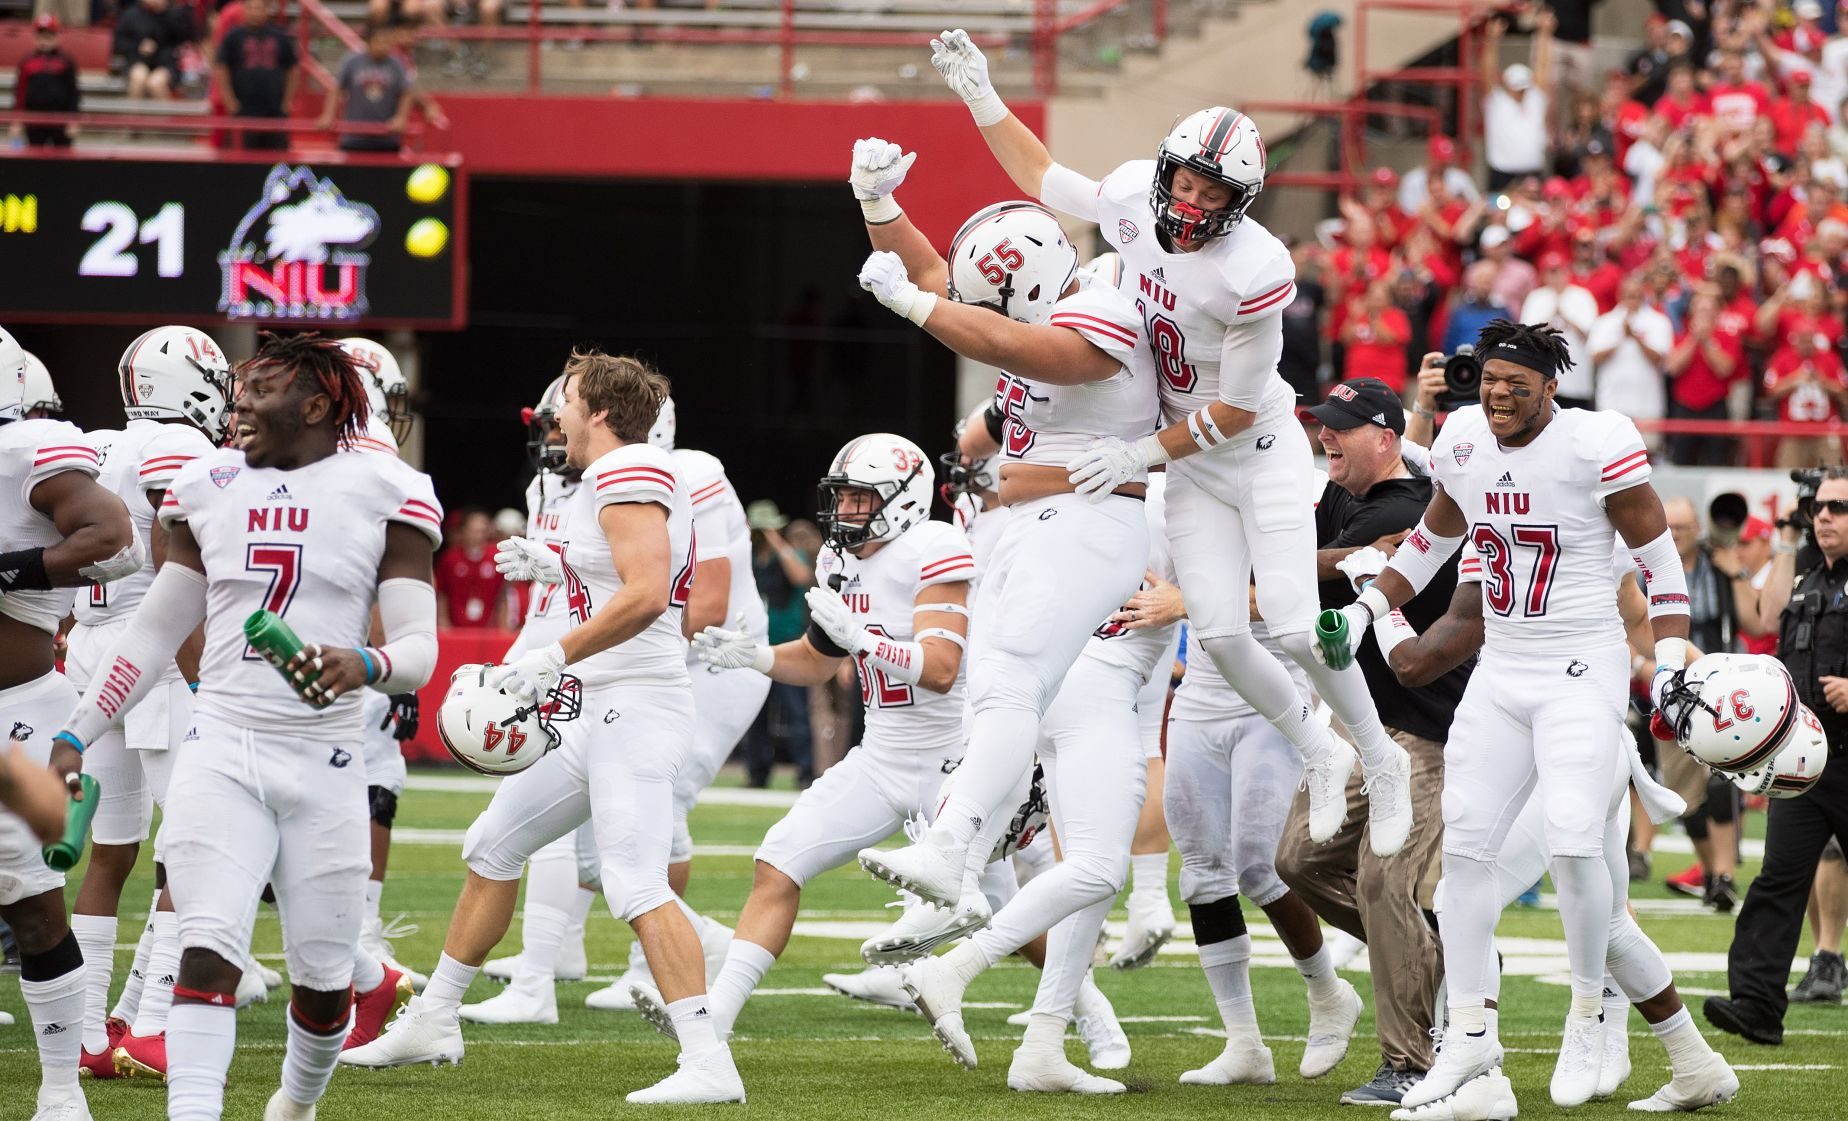 Notes from the first half: Nebraska vs. Rutgers